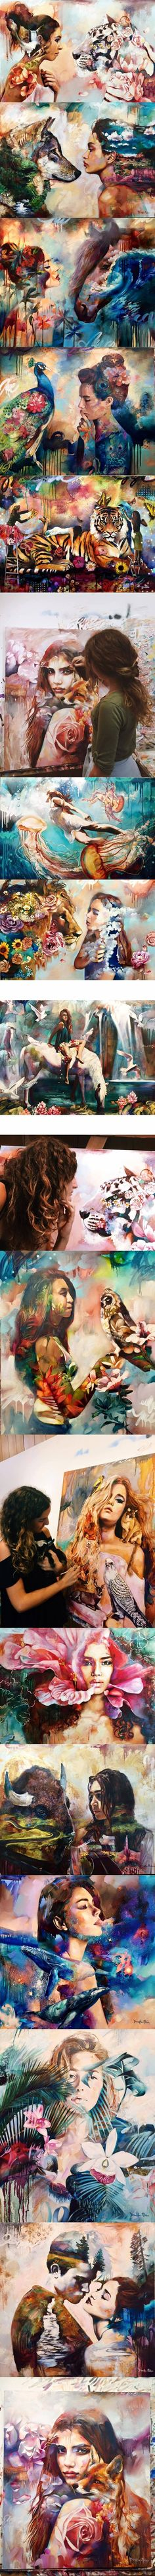 Dimitra Milan paintings reflect a dreamy world                                                                                                                                                                                 Mehr